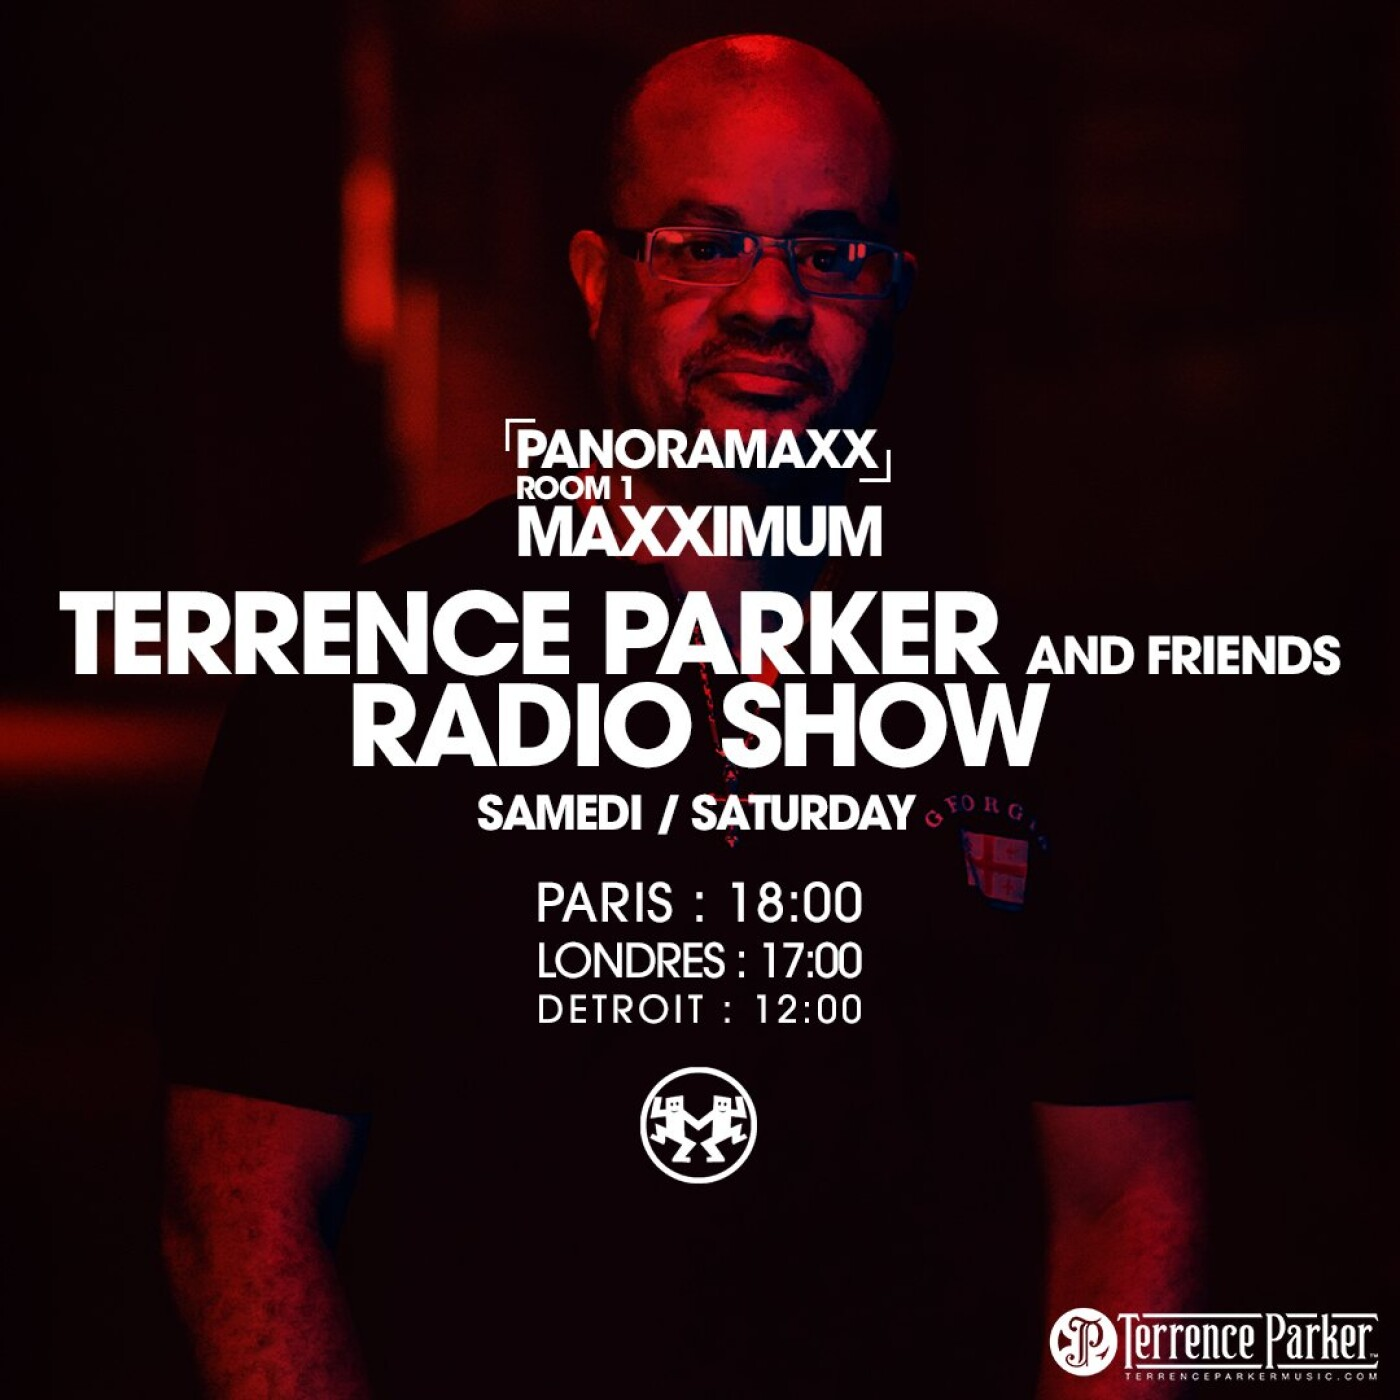 PANORAMAXX : TERRENCE PARKER